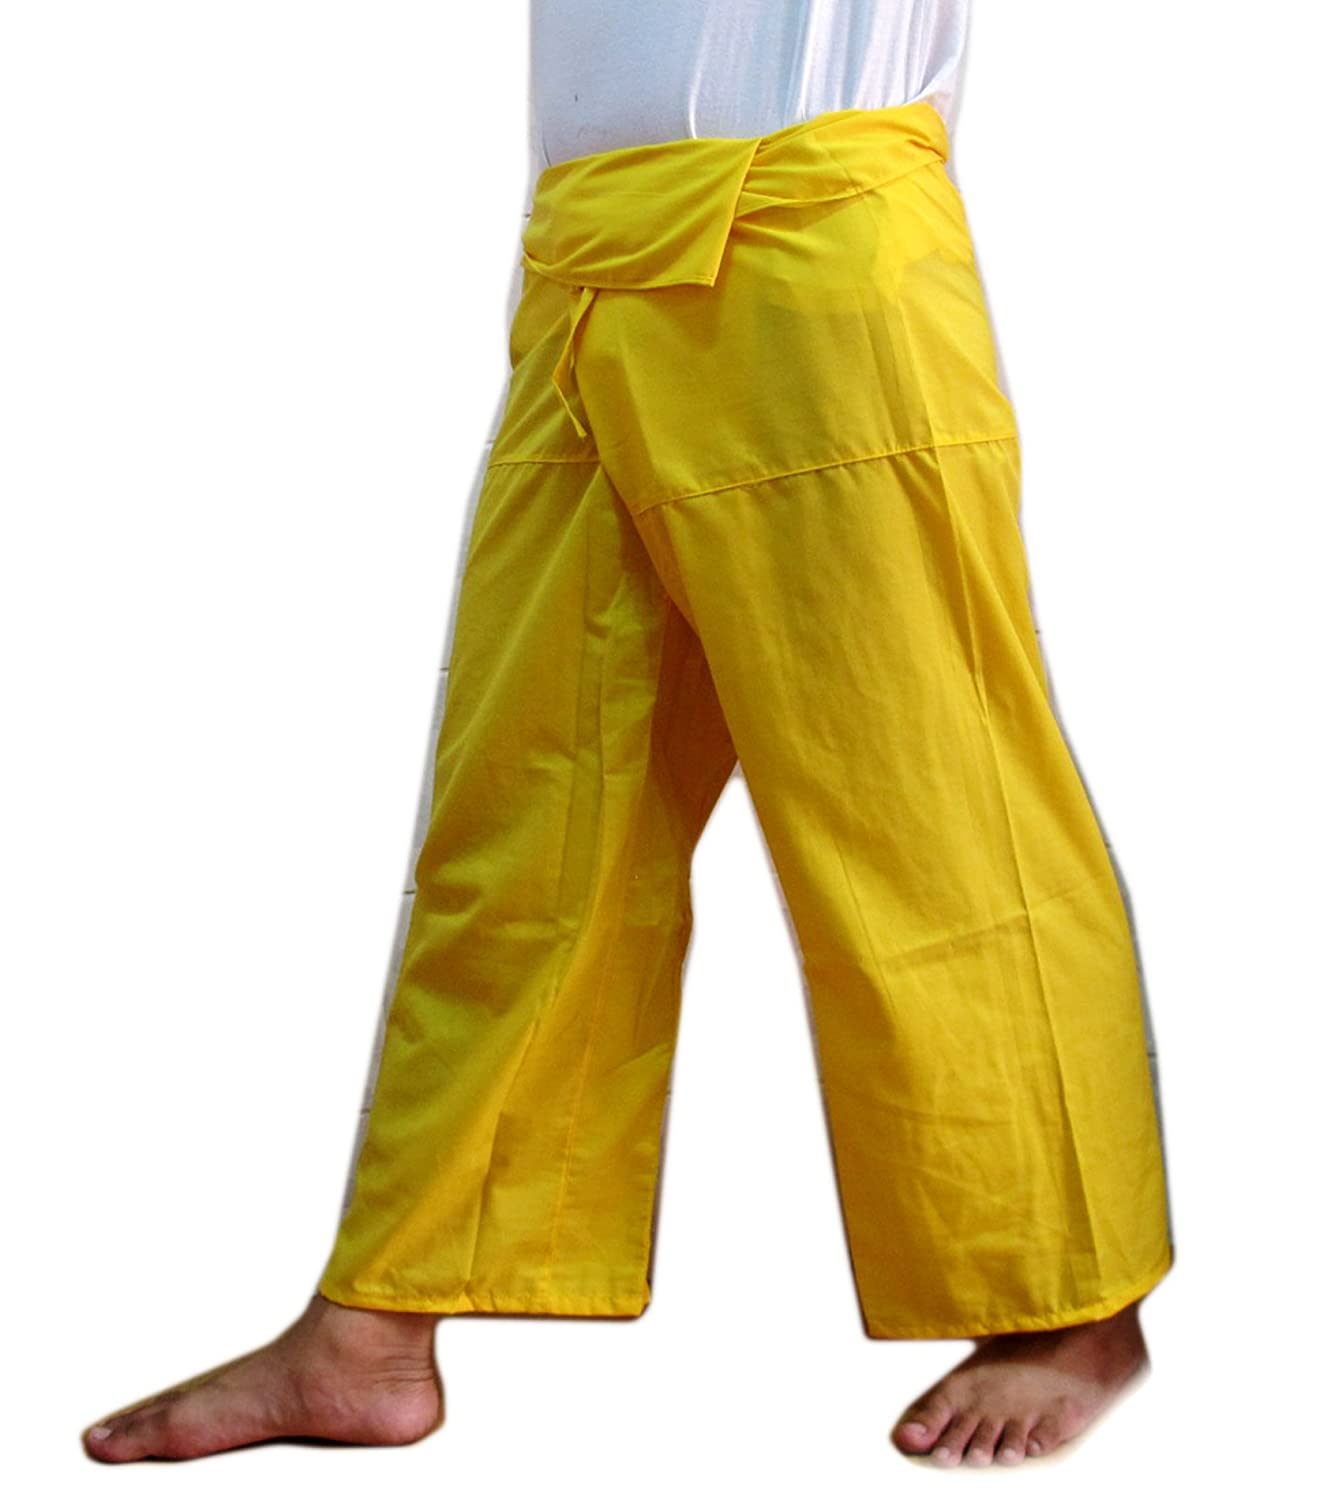 1 Thai Fisherman Pants Pregnancy Yoga Massage Beach Summer Pants